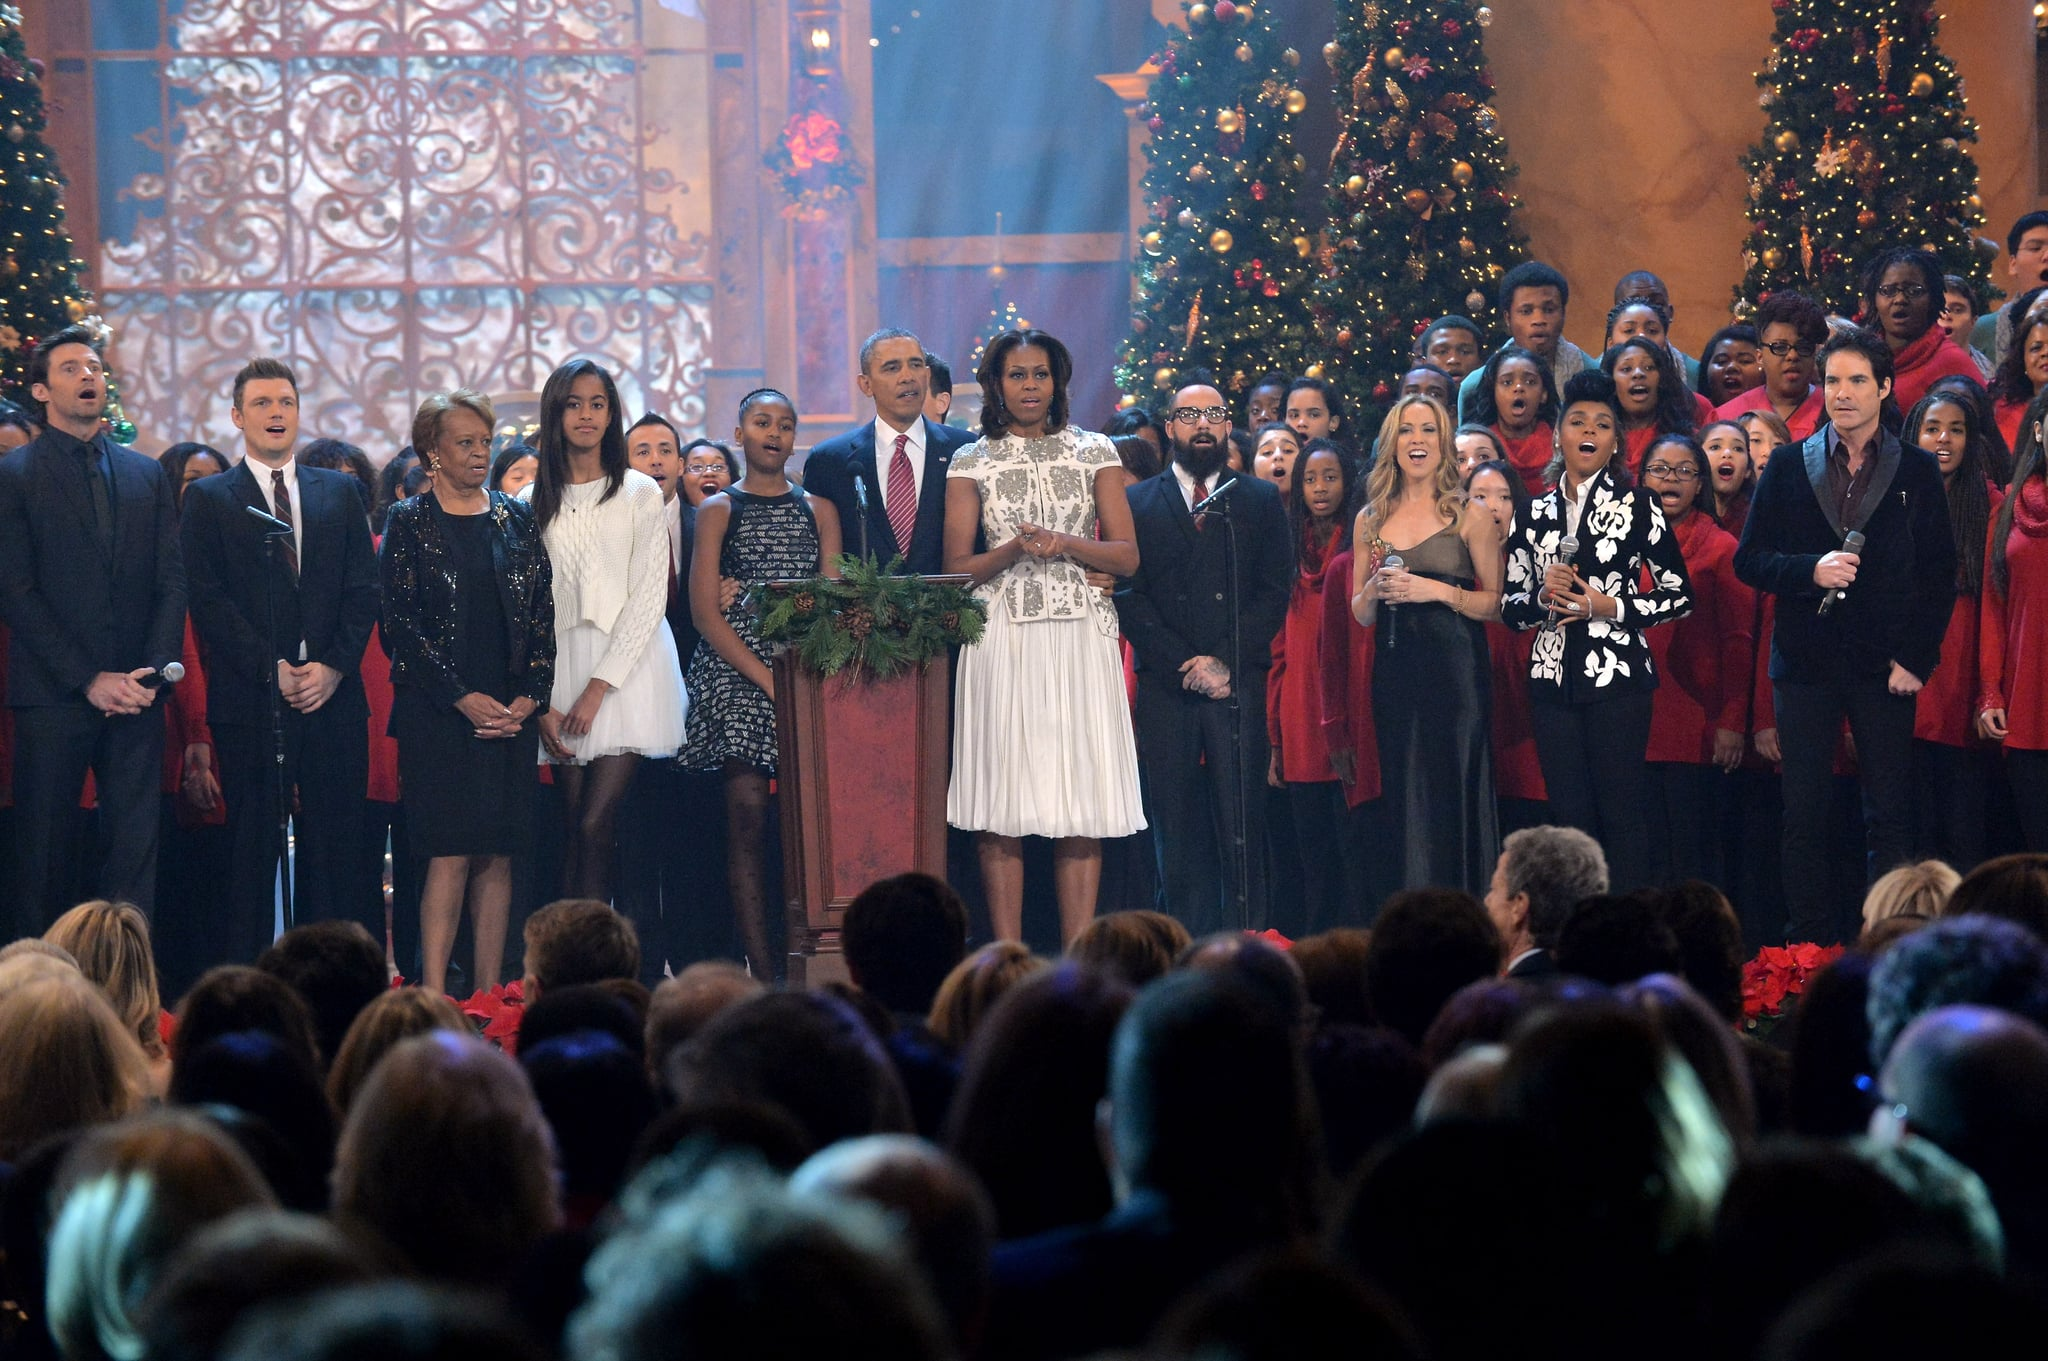 The Obamas sang with the Backstreet Boys, Sheryl Crow, Hugh Jackman, and more stars during the special.